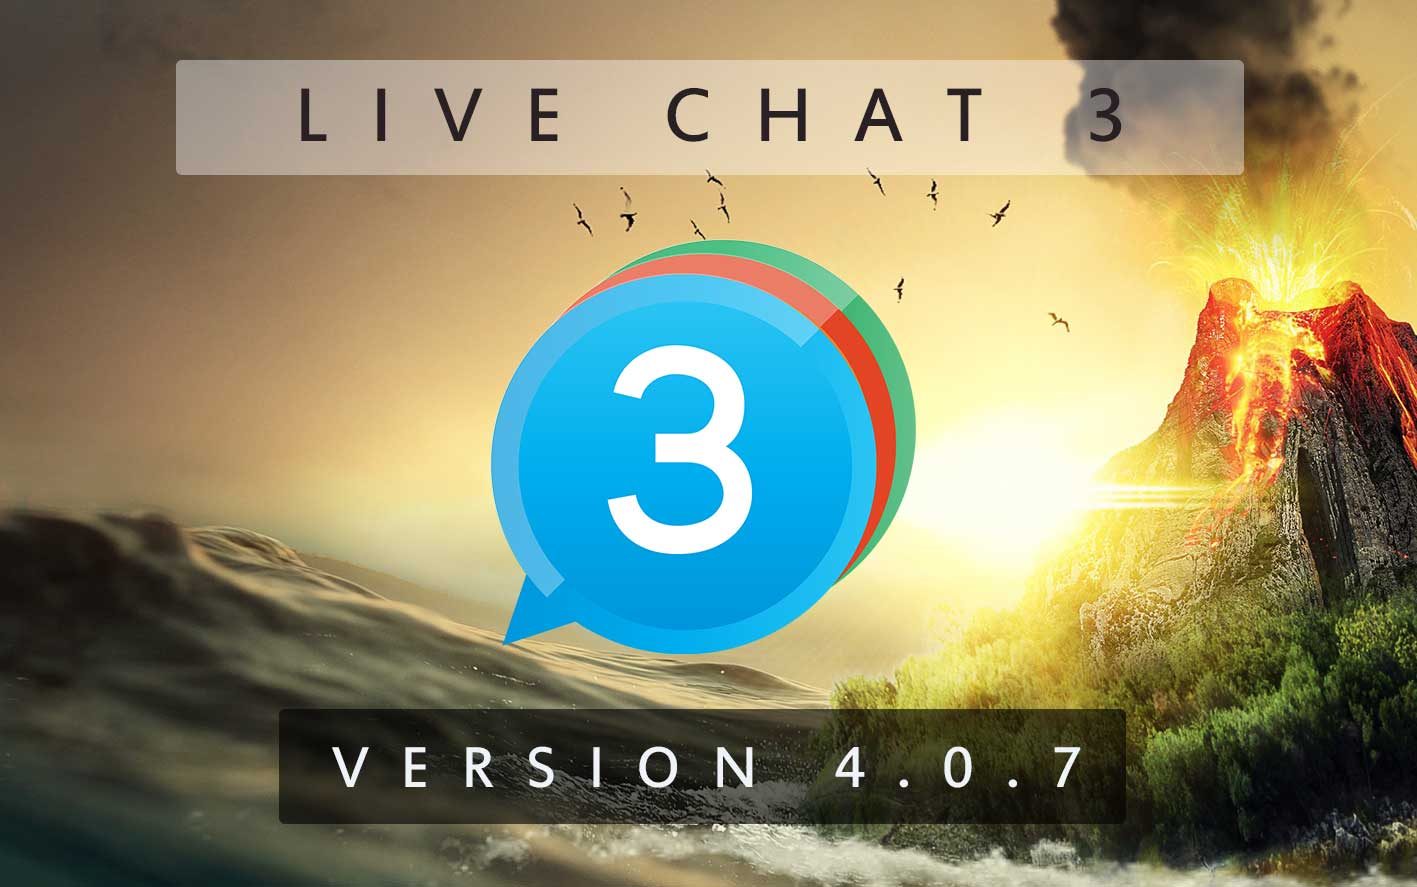 Live Chat 3 - Version 4.0.7